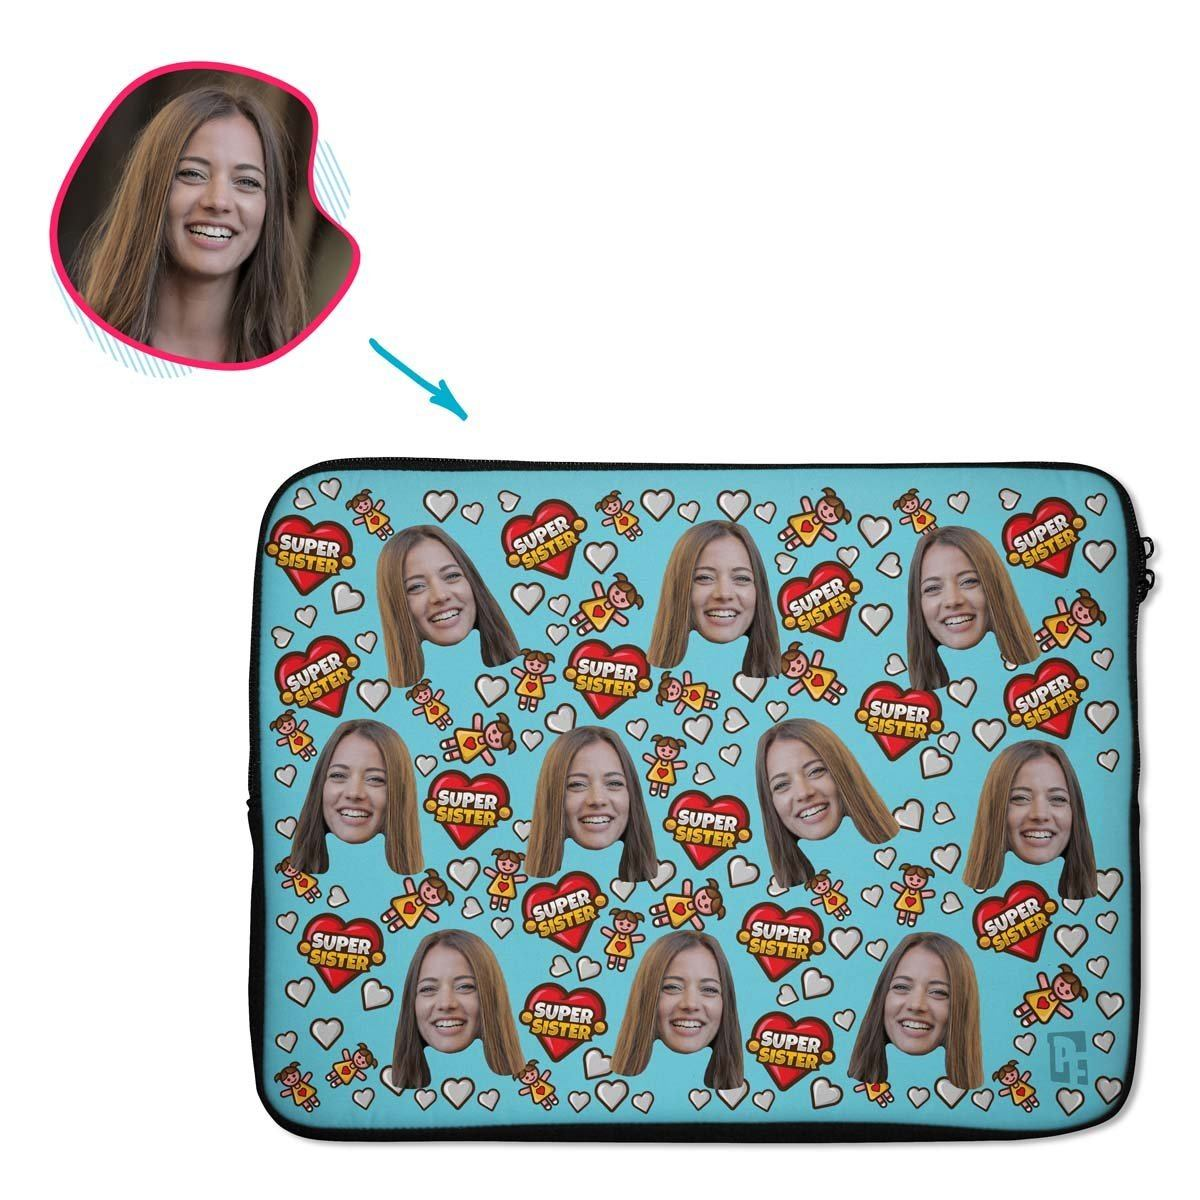 blue Super Sister laptop sleeve personalized with photo of face printed on them